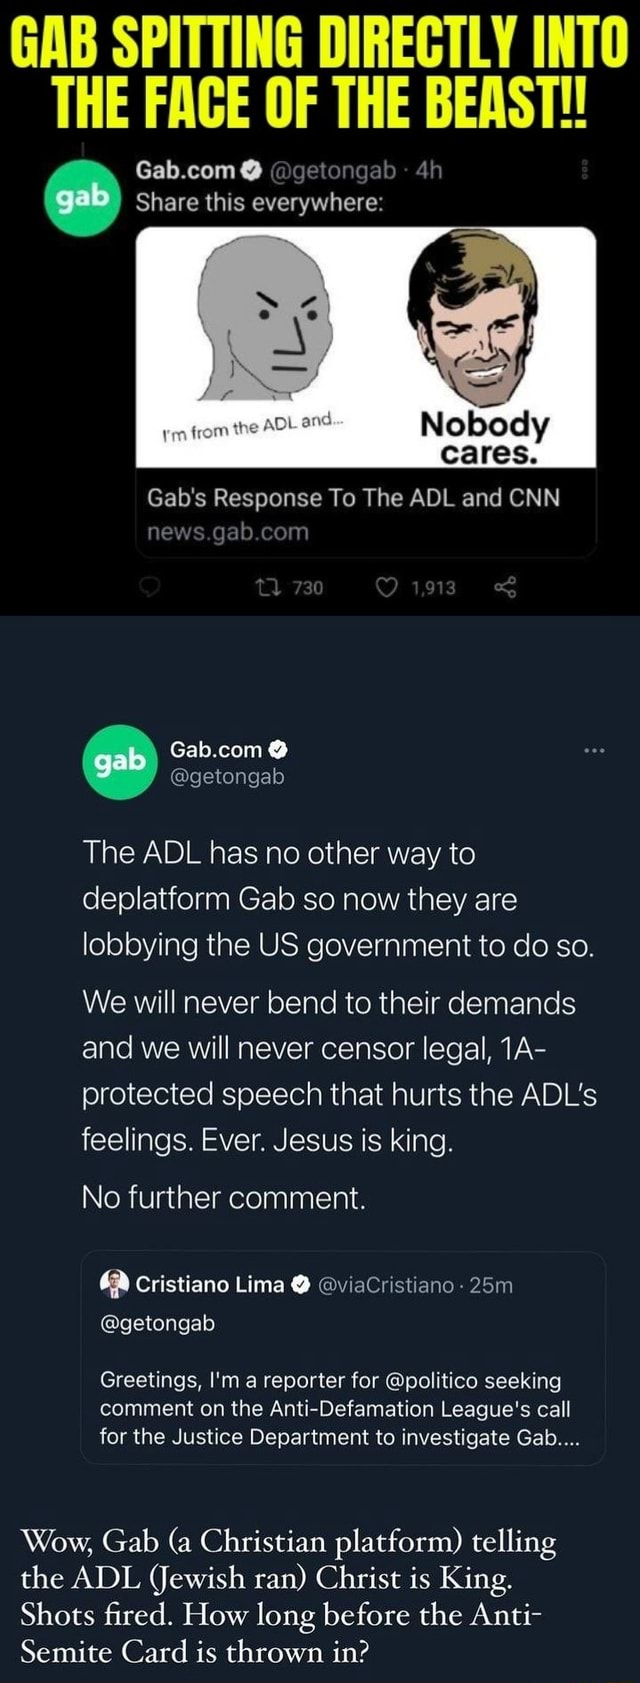 GAB SPITTING DIRECTLY INTO THE FAGE OF THE at BEAST at gab Share this everywhere Gab's Response To The ADL and CNN 730 ing news gab com Gab.com The ADL has no other way to deplatform Gab so now they are lobbying the US government to do so. We will never bend to their demands and we will never censor legal, protected speech that hurts the ADL's feelings. Ever. Jesus is king. No further comment. cristiano Lima viaCristiano getongab Greetings, I'm a reporter for politico seeking comment on the Anti Defamation League's call for the Justice Department to investigate Gab Wow, Gab a Christian platform telling the ADL Jewish ran Christ is King. Shots fired. How long before the Anti Semite Card is thrown in memes